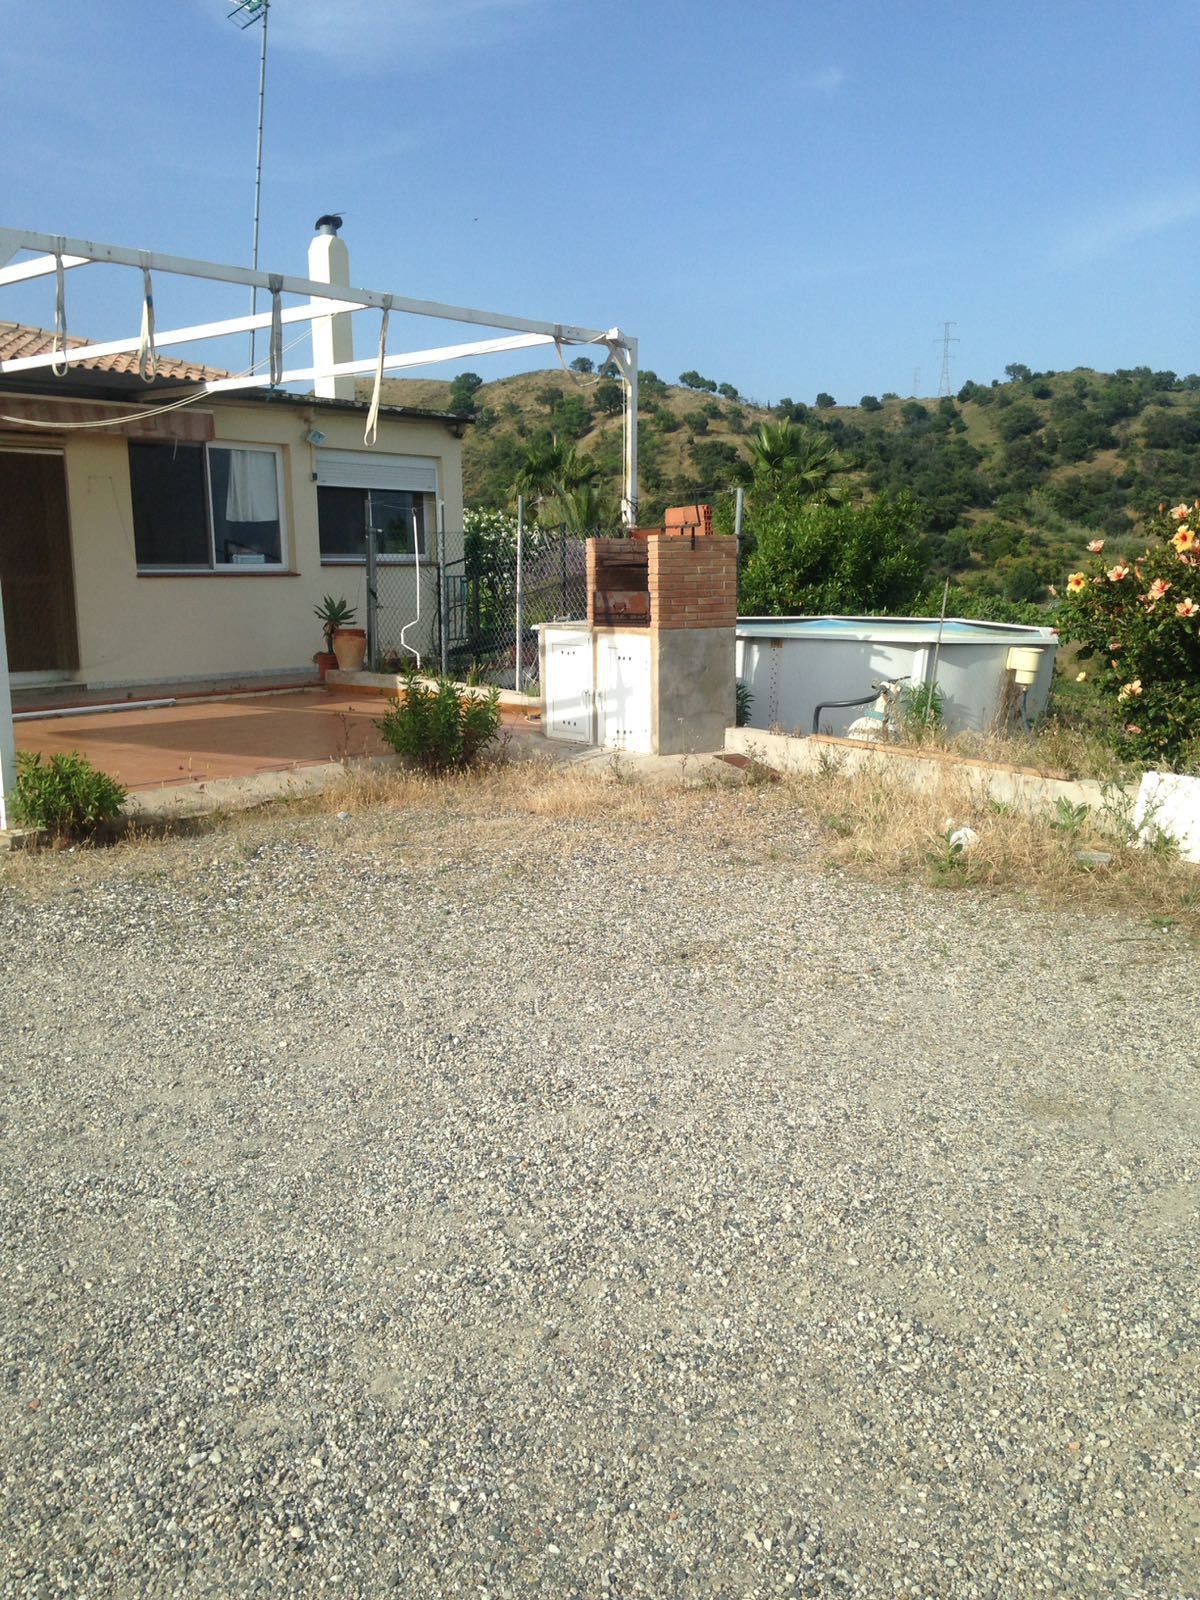 Magnificent villa with sea and mountain views, 130 m² plus 100 m² of enclosed garage with possibilit,Spain